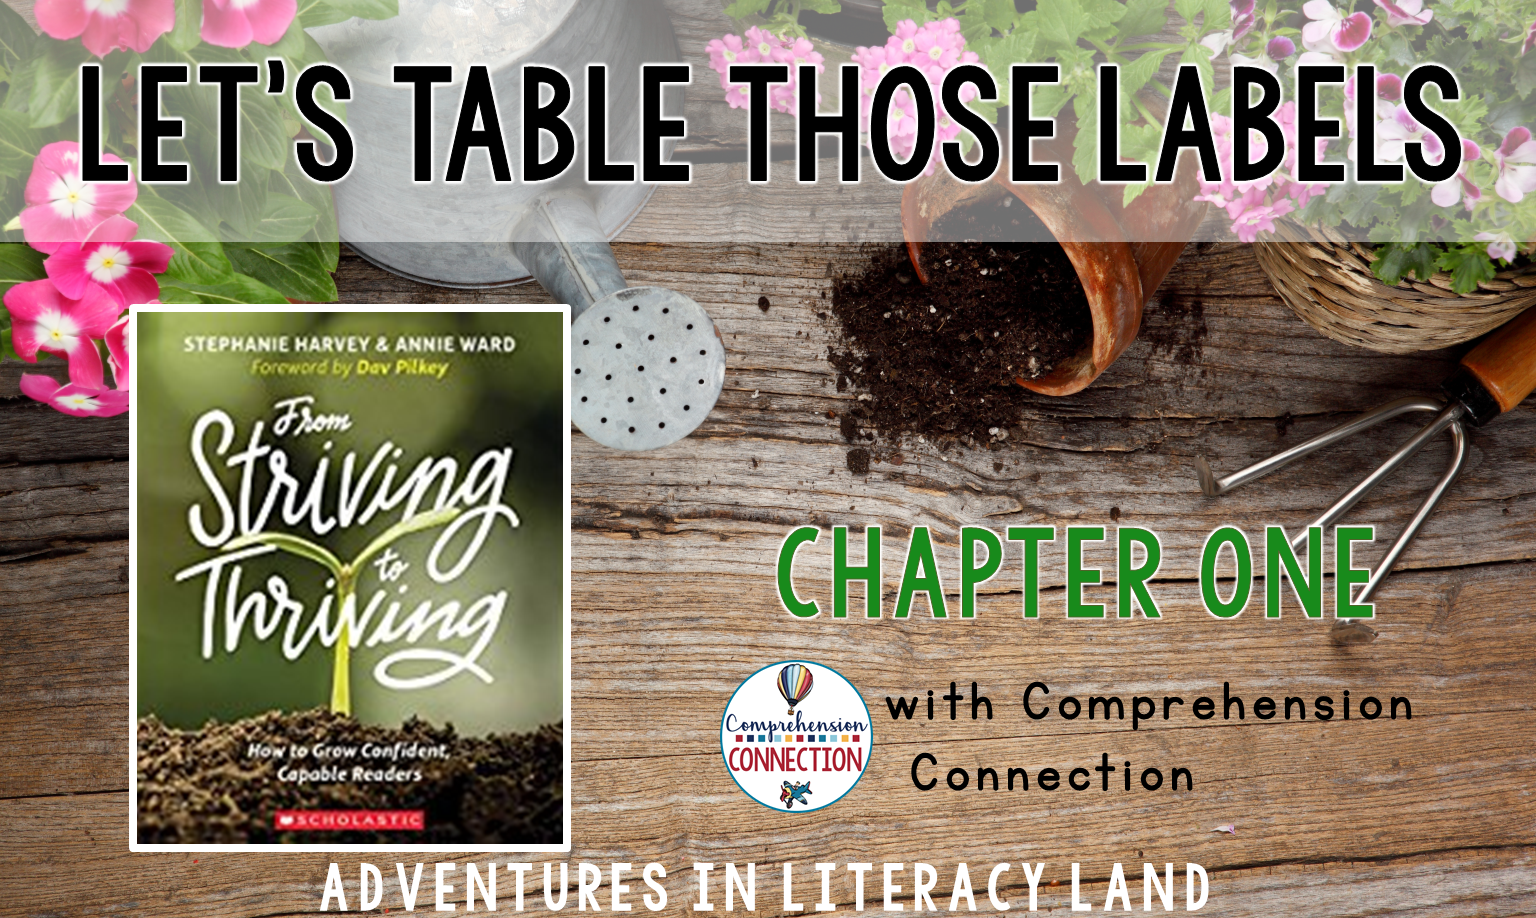 What an amazing chapter! Chapter one jumps right in with recommendations for making classroom reading instruction lively, meaningful, and fun. Check out this post for information on what you can do to make reading great for your students.